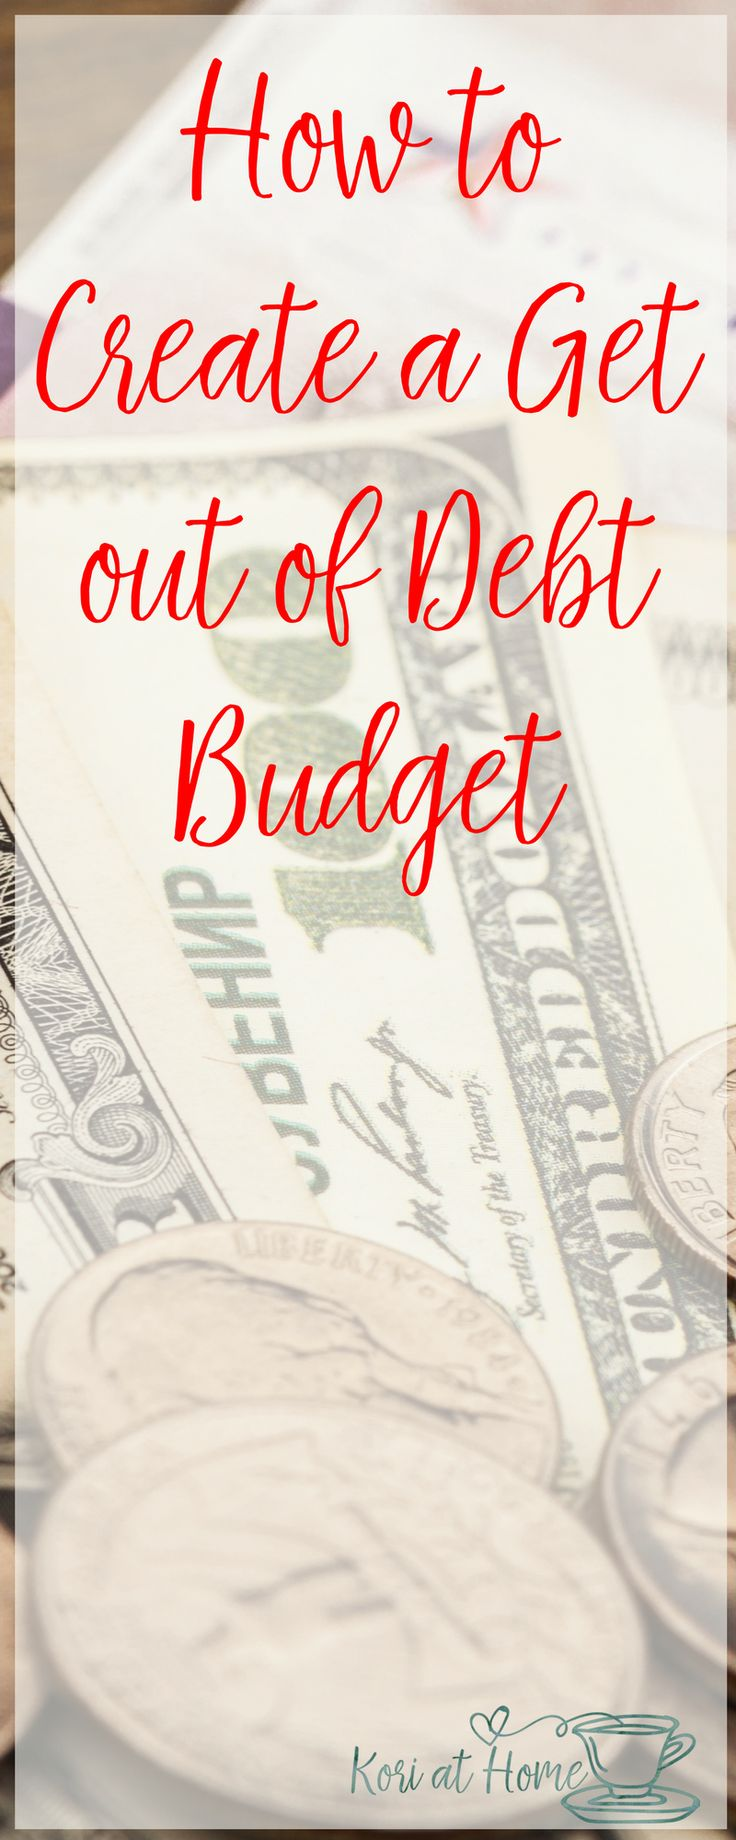 Creating a budget can be a great tool to help you get out of debt. Here's how to do so.